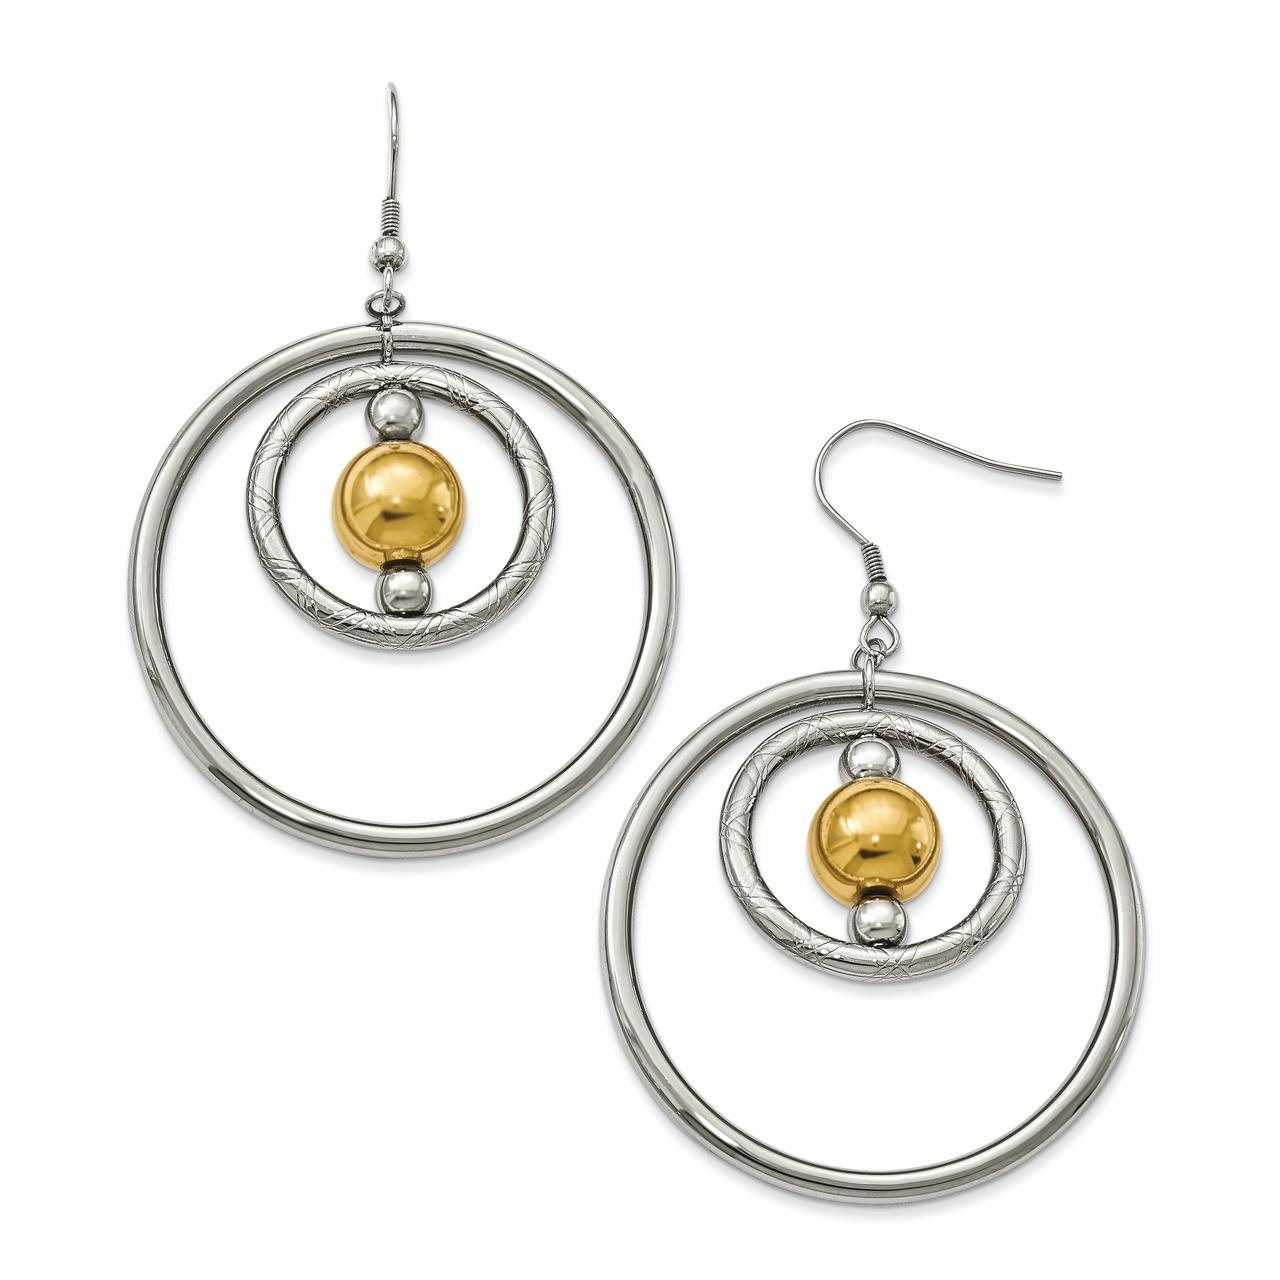 Primal Steel Stainless Steel Polished Yellow IP-plated Shepherd Hook Earrings